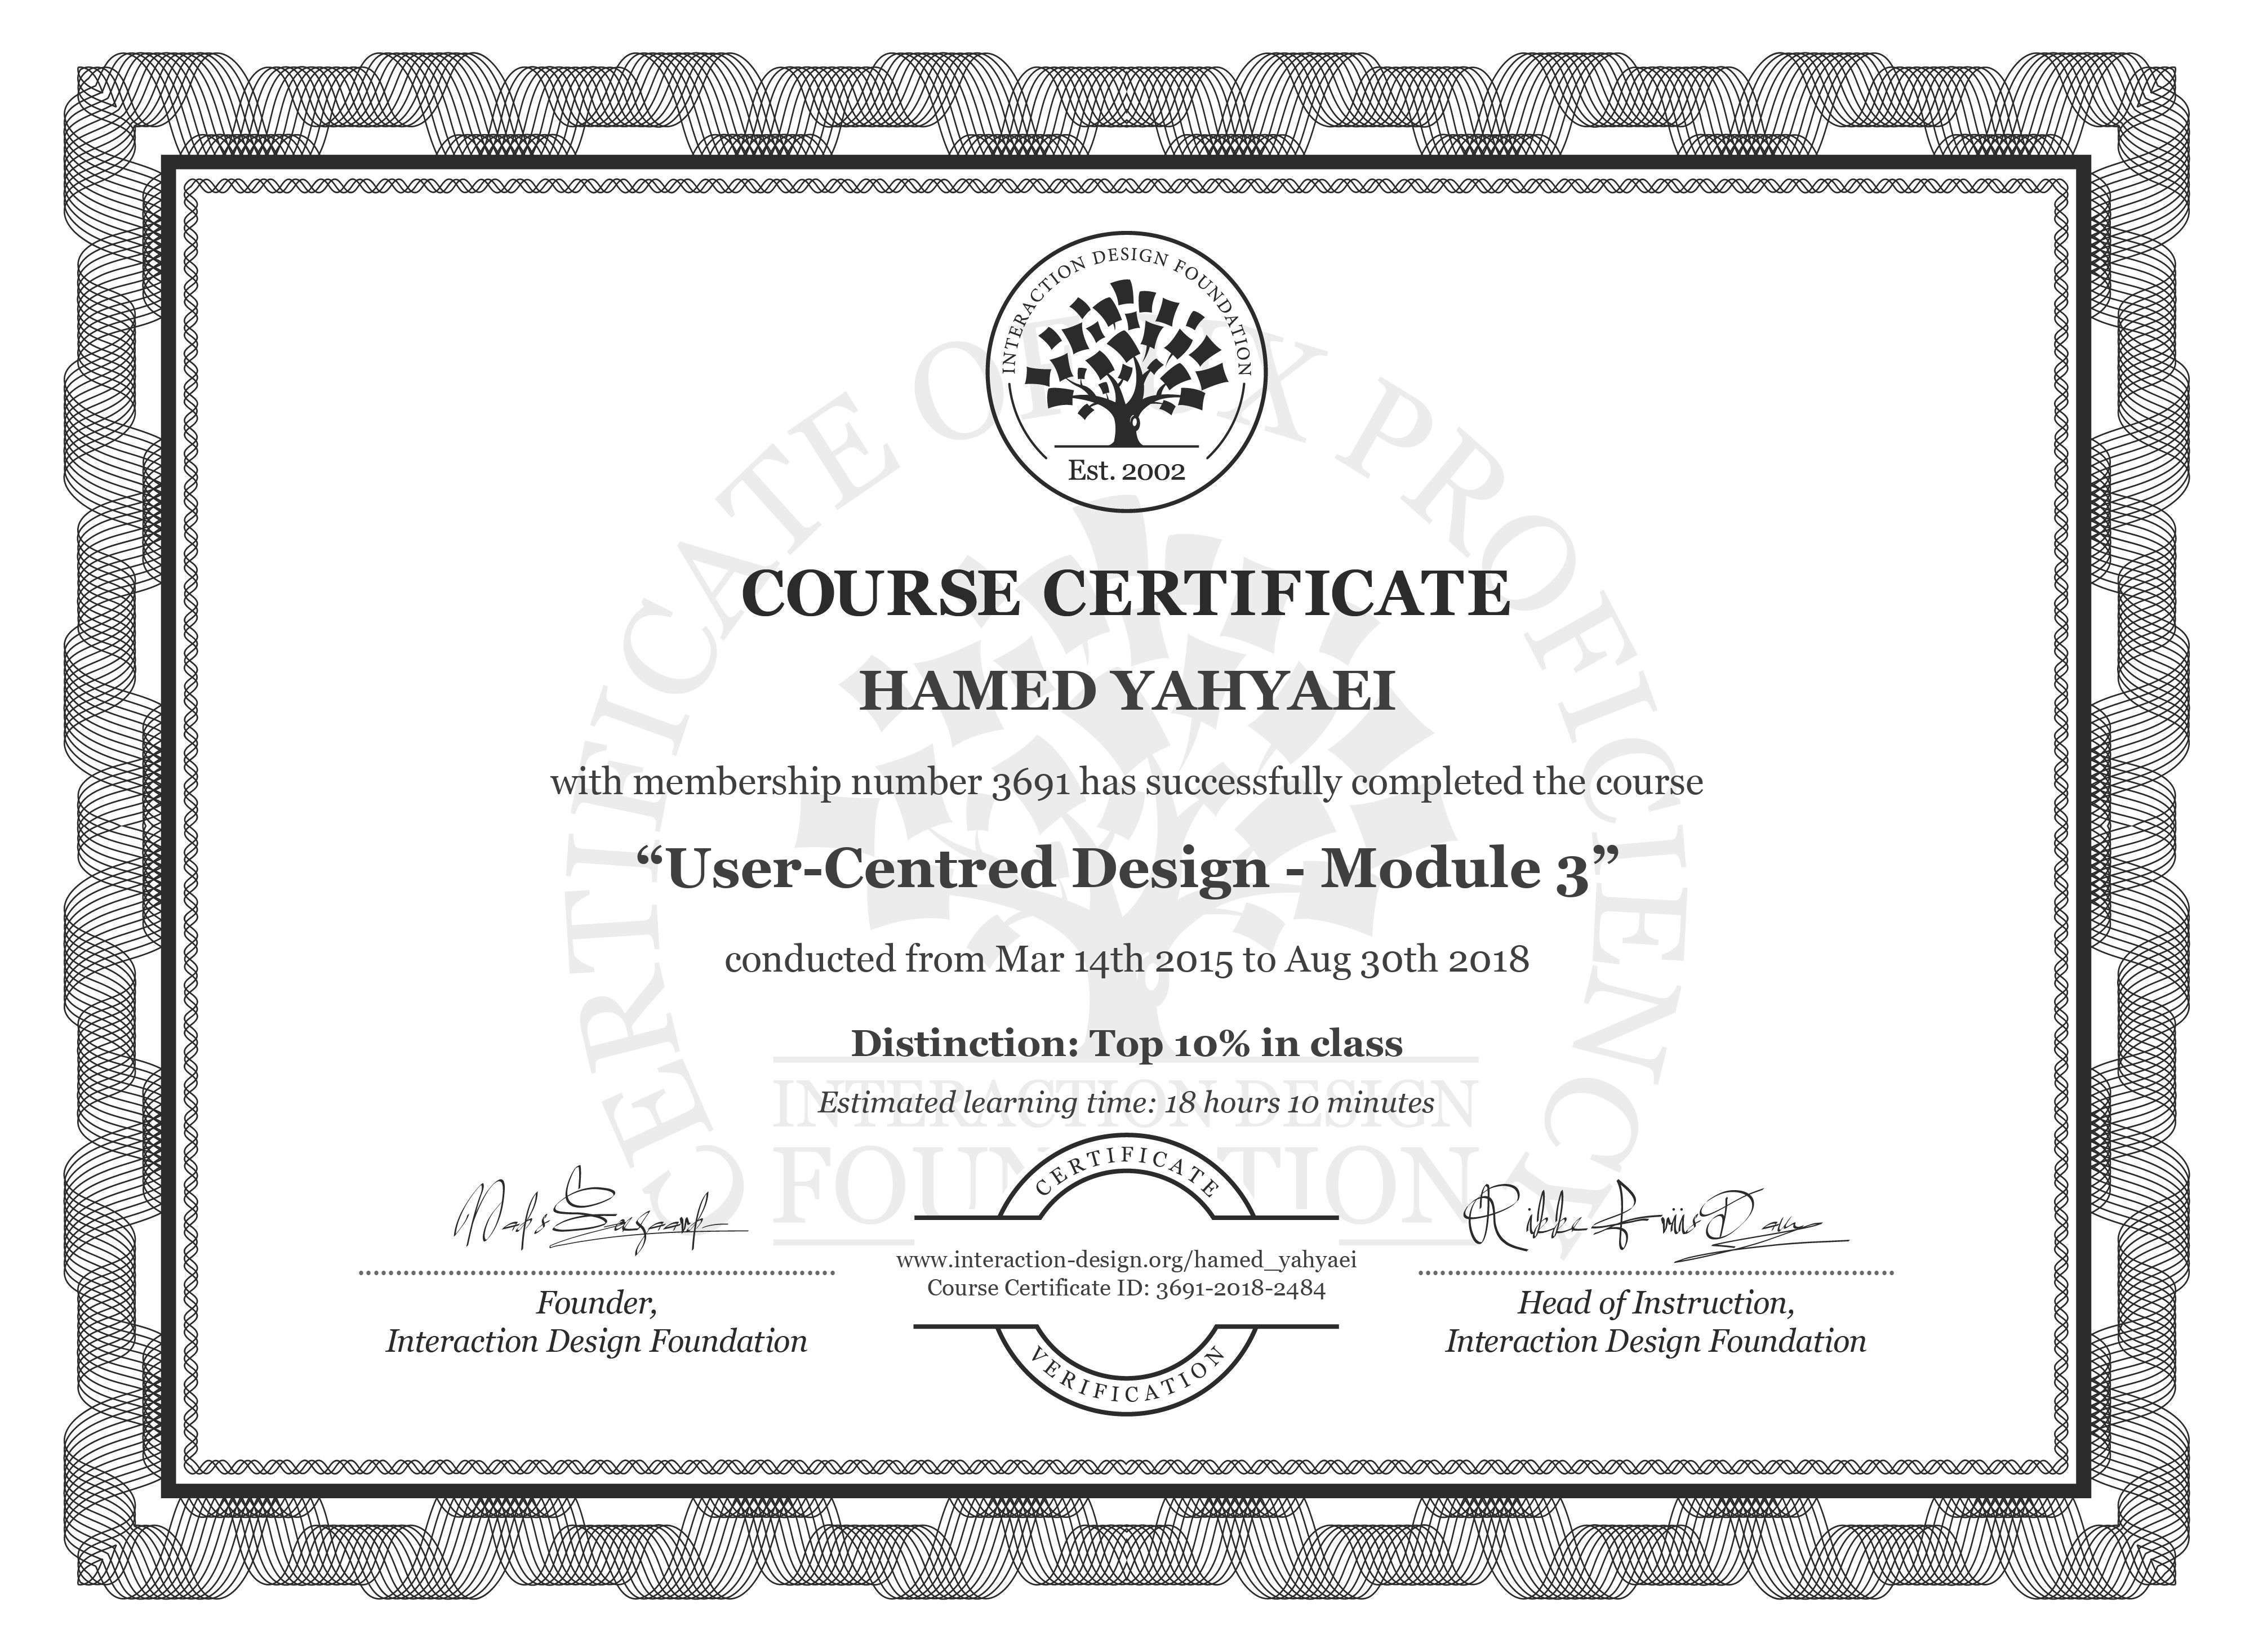 Hamed Yahyaei: Course Certificate - User-Centred Design - Module 3